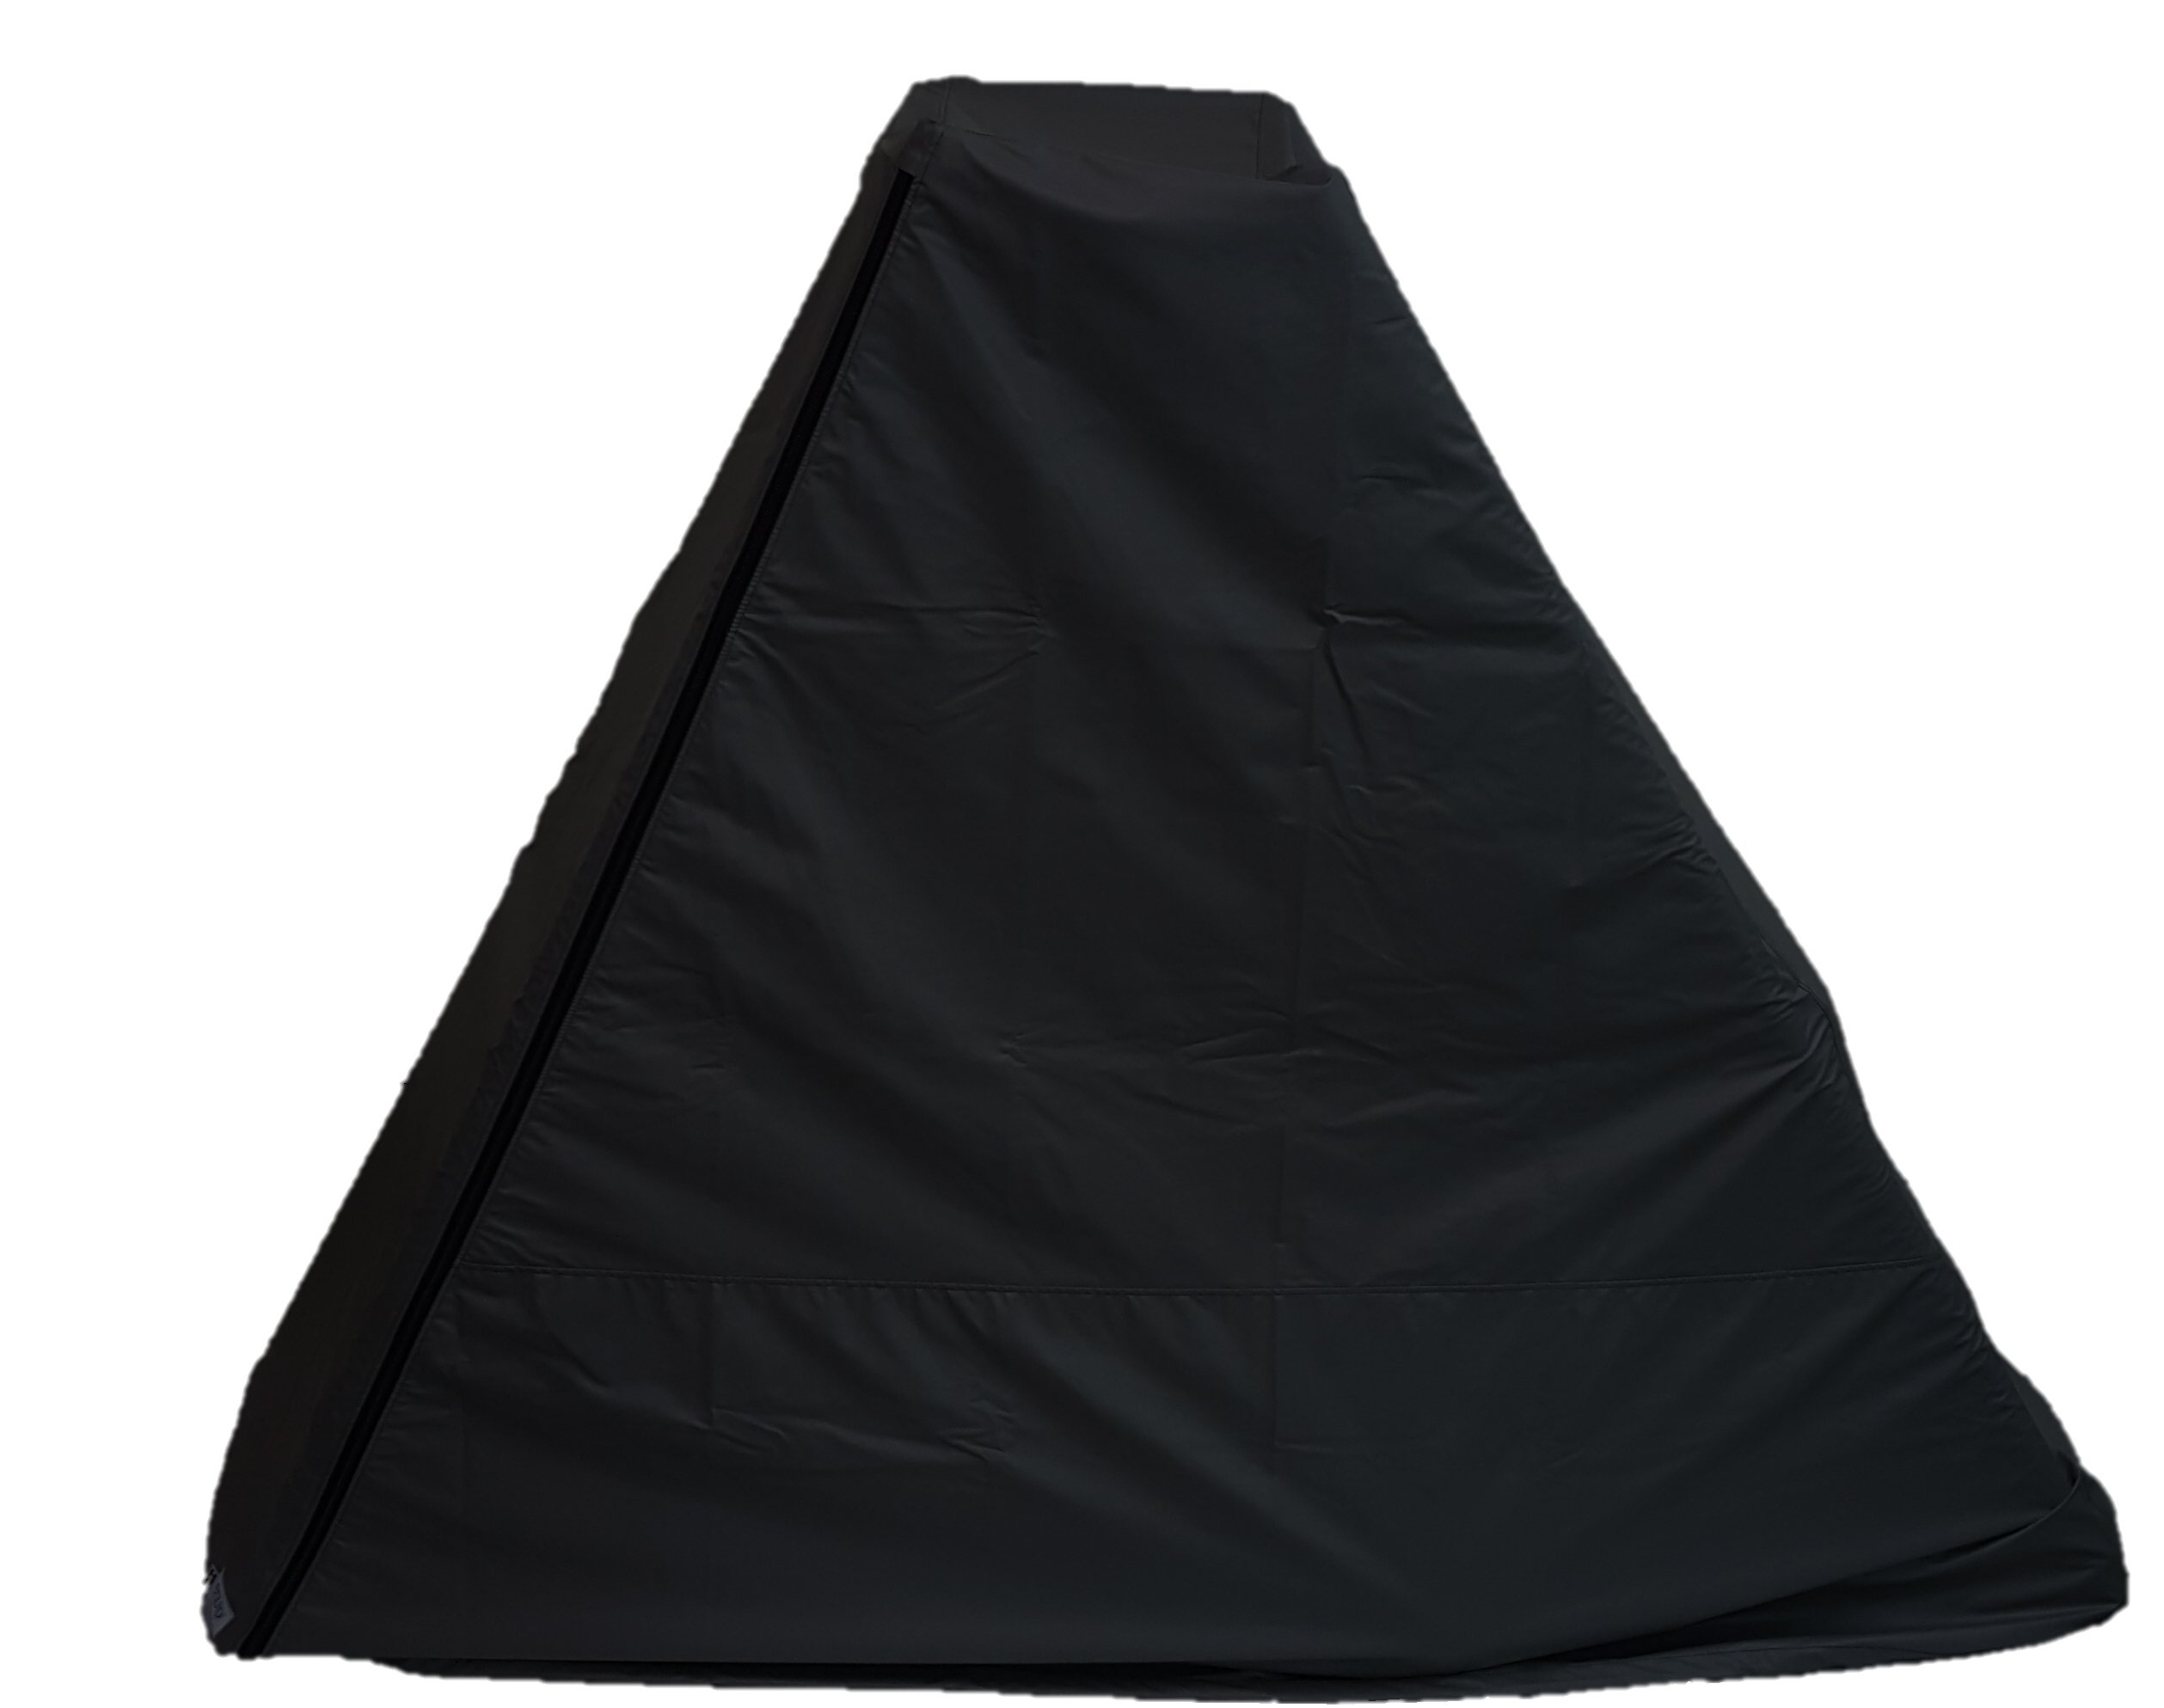 The Best Elliptical Machine Cover | Front Drive. Heavy Duty Fitness Equipment Protective Covers Ideal for Indoor or Outdoor Use. Made in USA with 3-Year Warranty. (Black, Small Extra Tall)